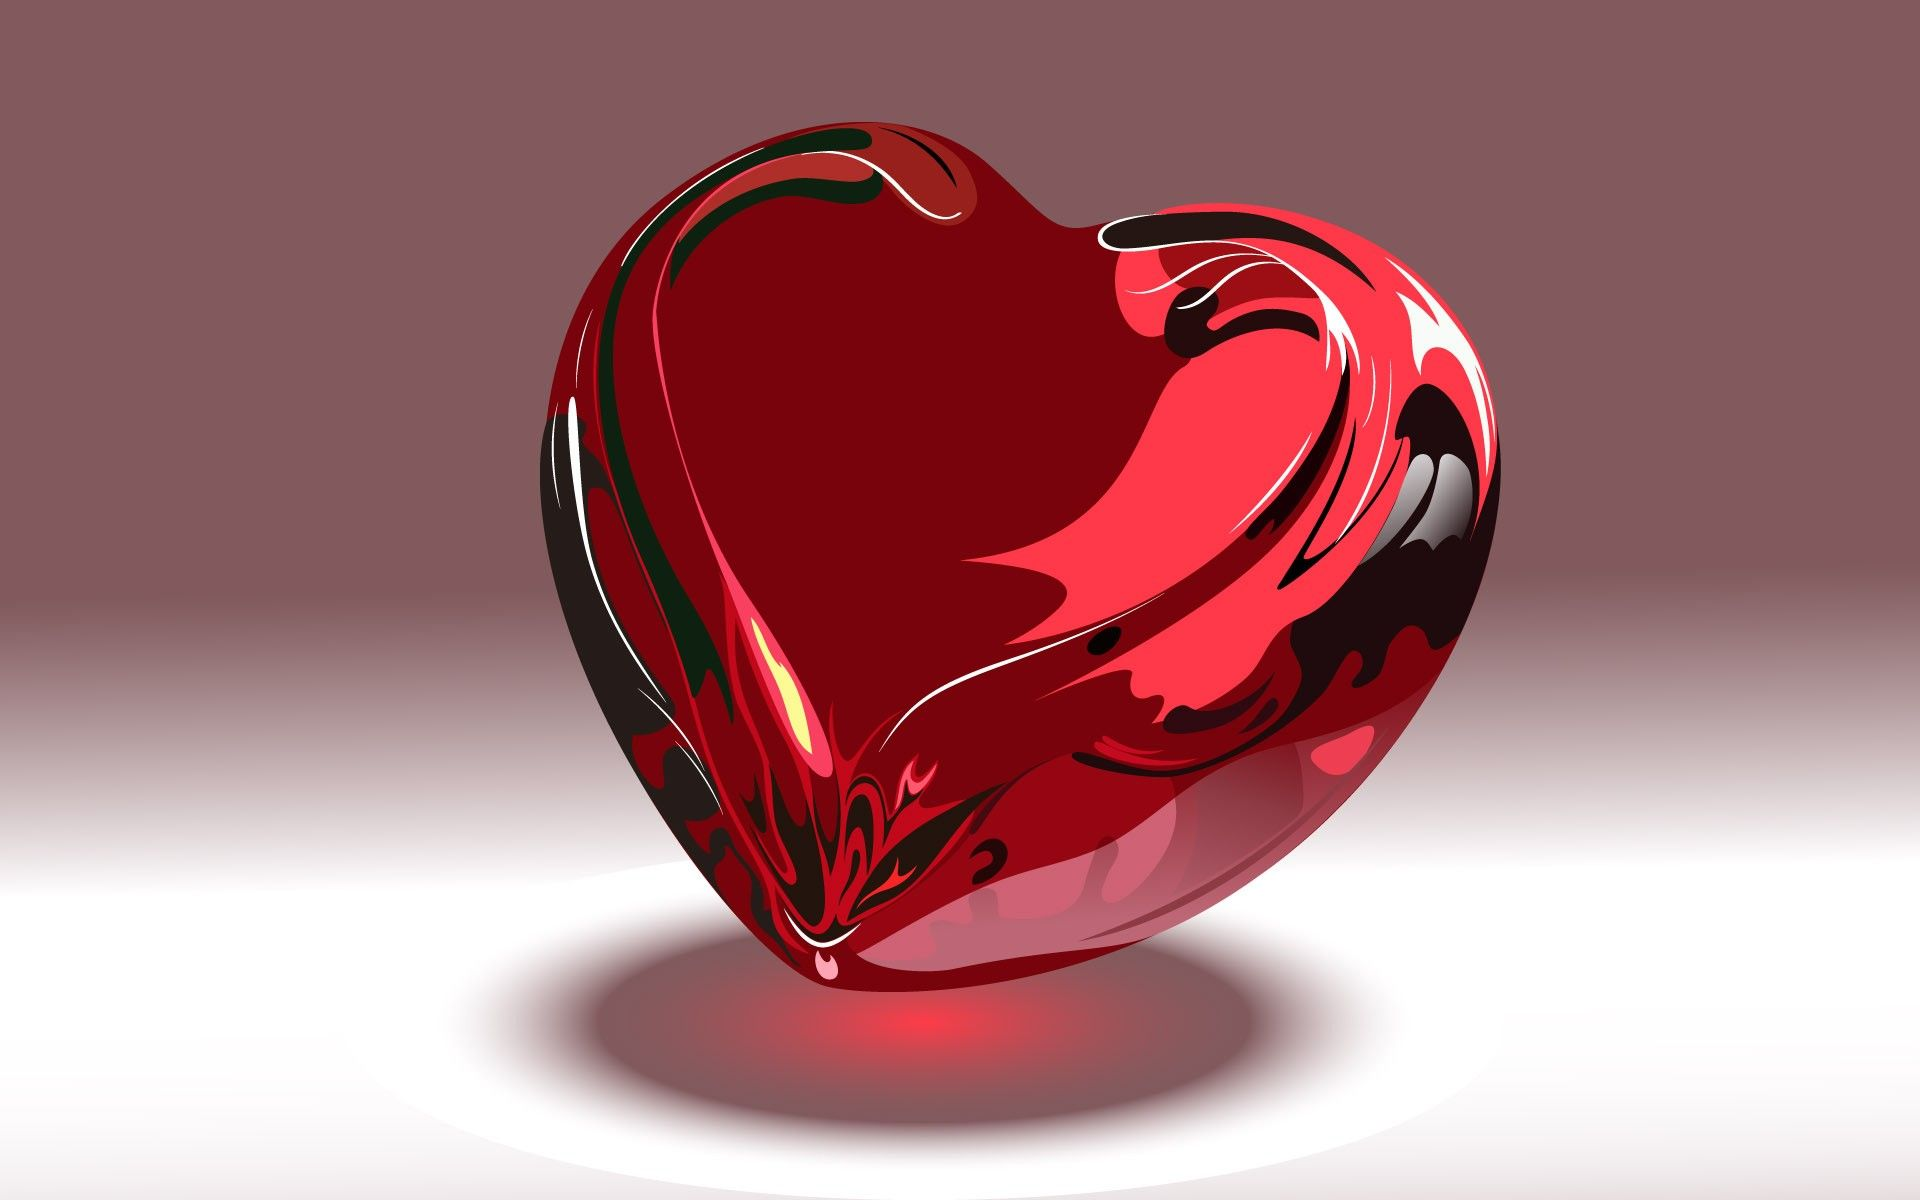 image for hd wallpaper 3d love heart 150778 image | something new